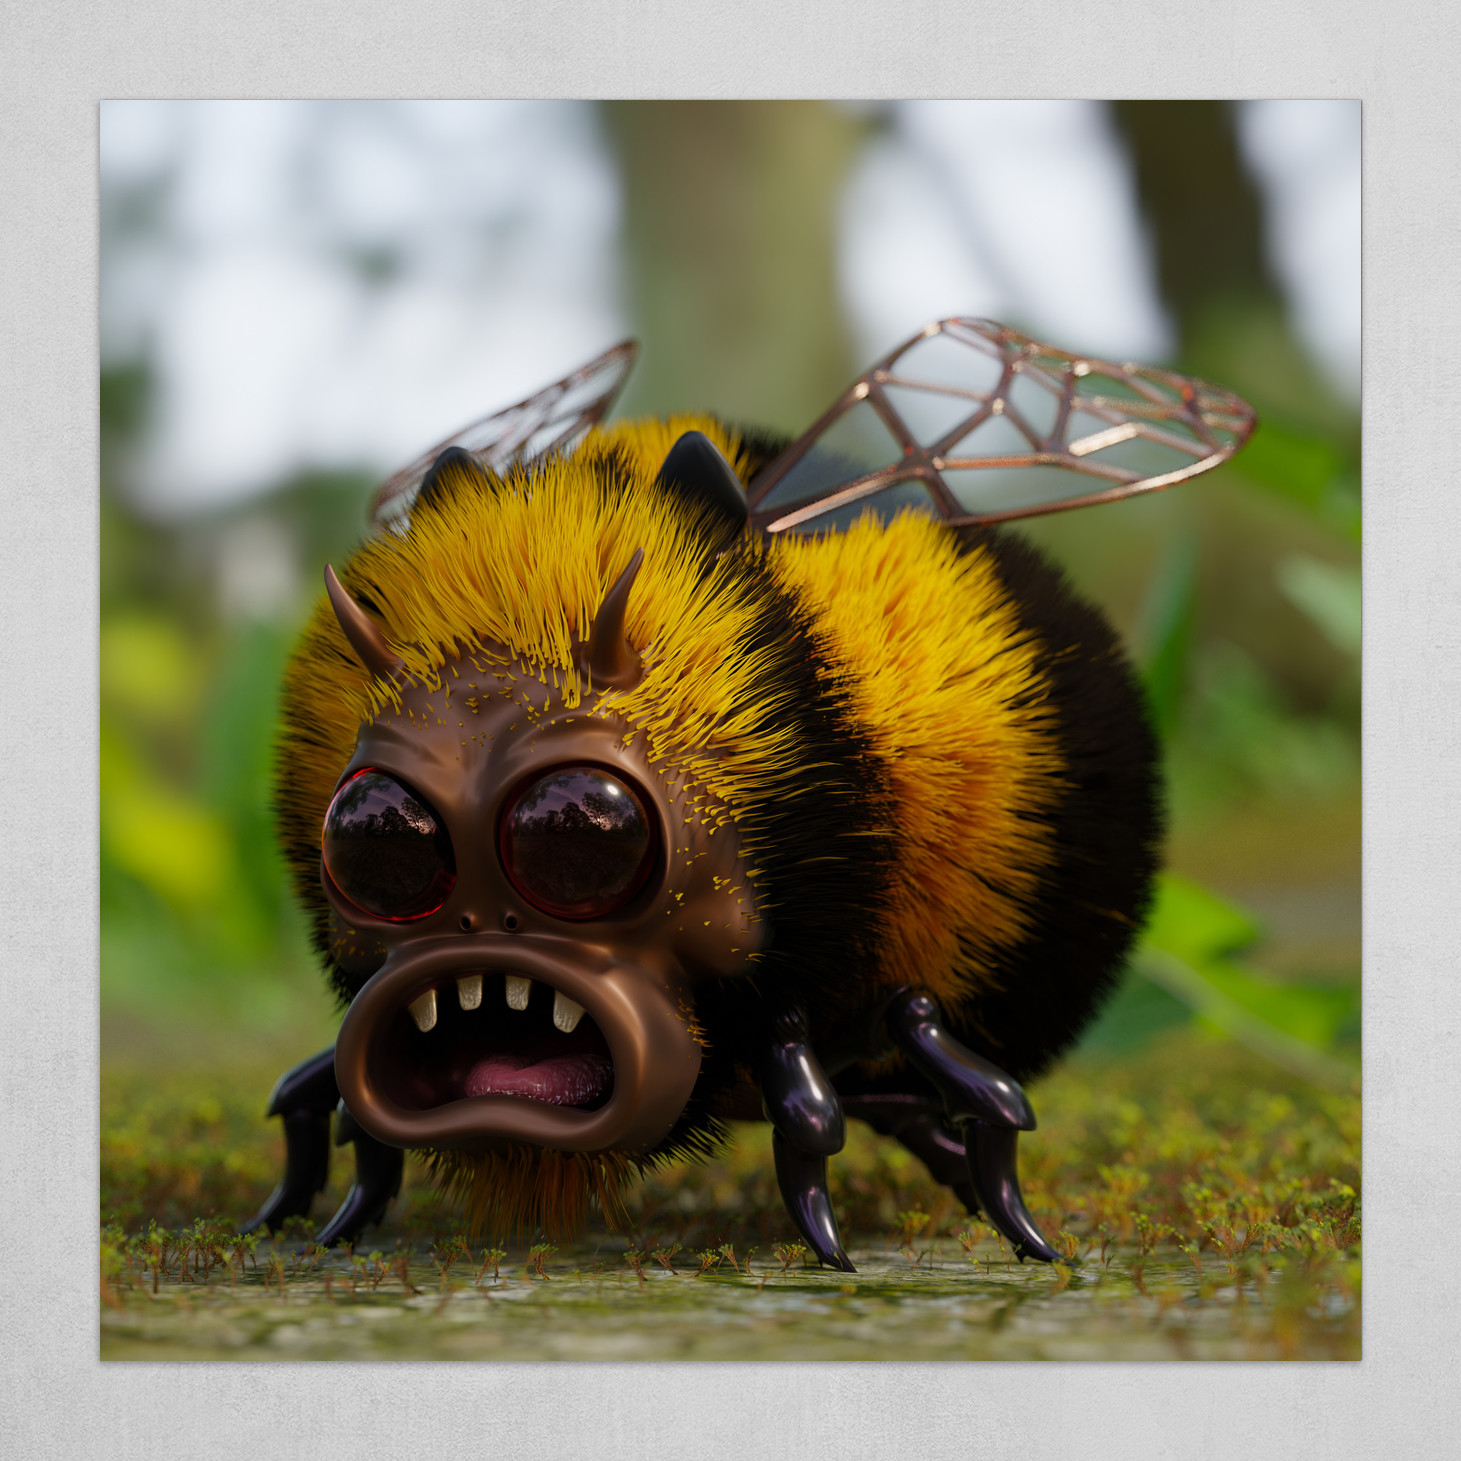 Angry Mutant Bumble Bee